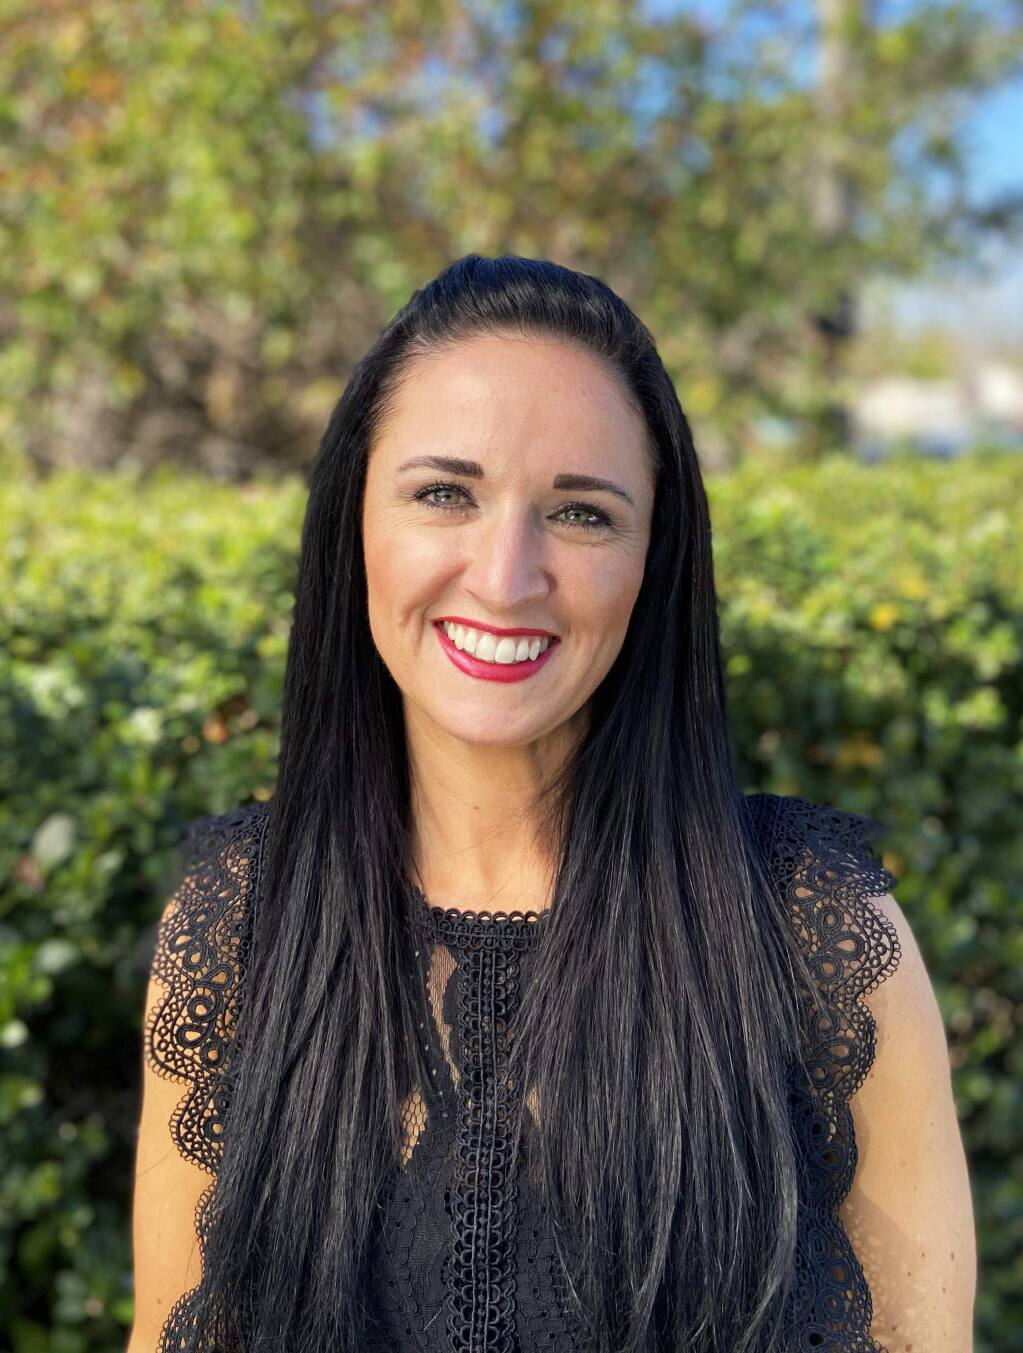 Allison Hernandez, 38, enterprise sales operations manager, Sonic, is a 2020 Forty Under 40 winner. (courtesy photo)